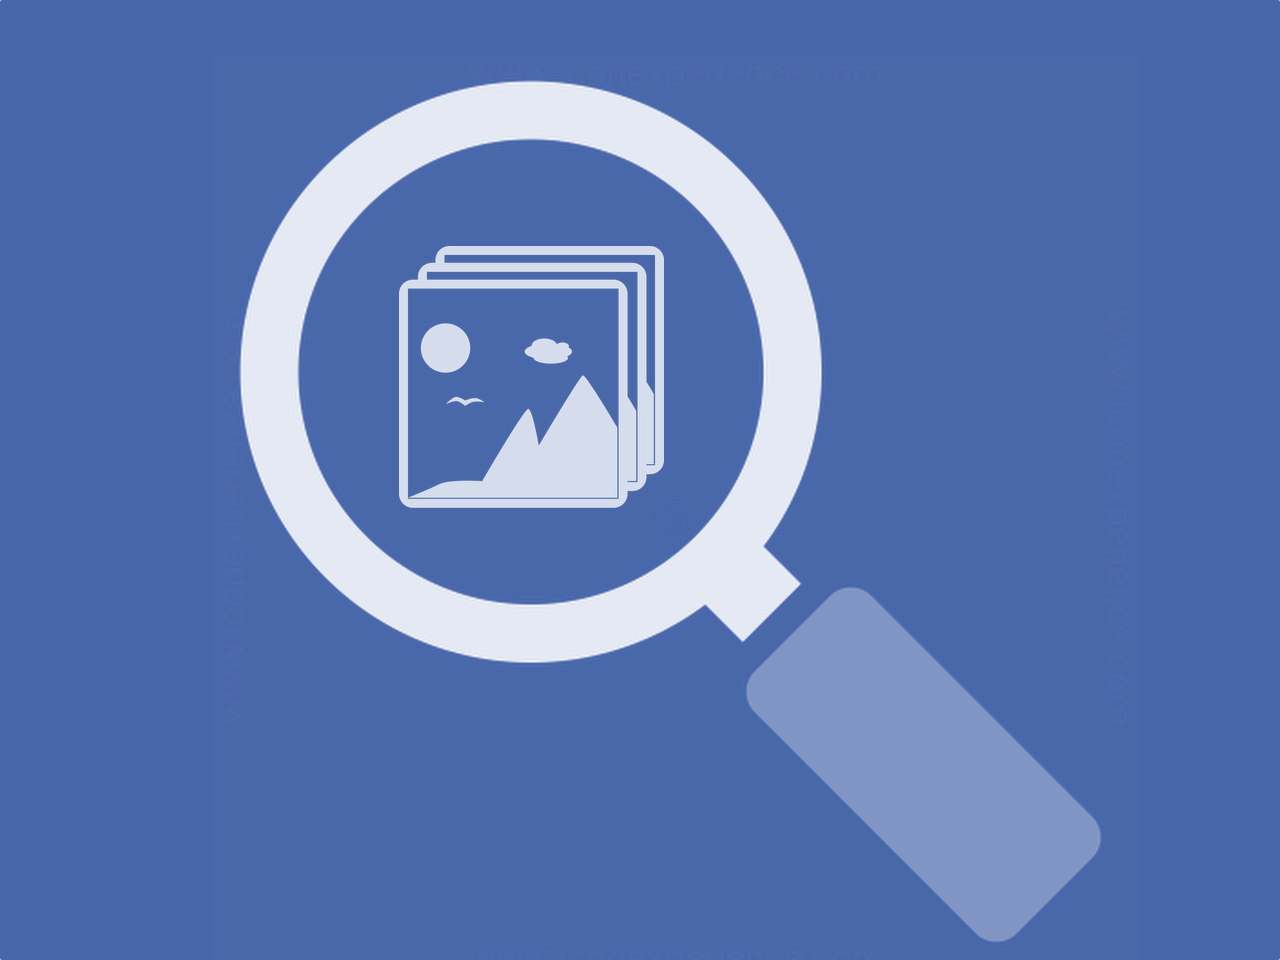 Low-Quality Web Pages on Facebook